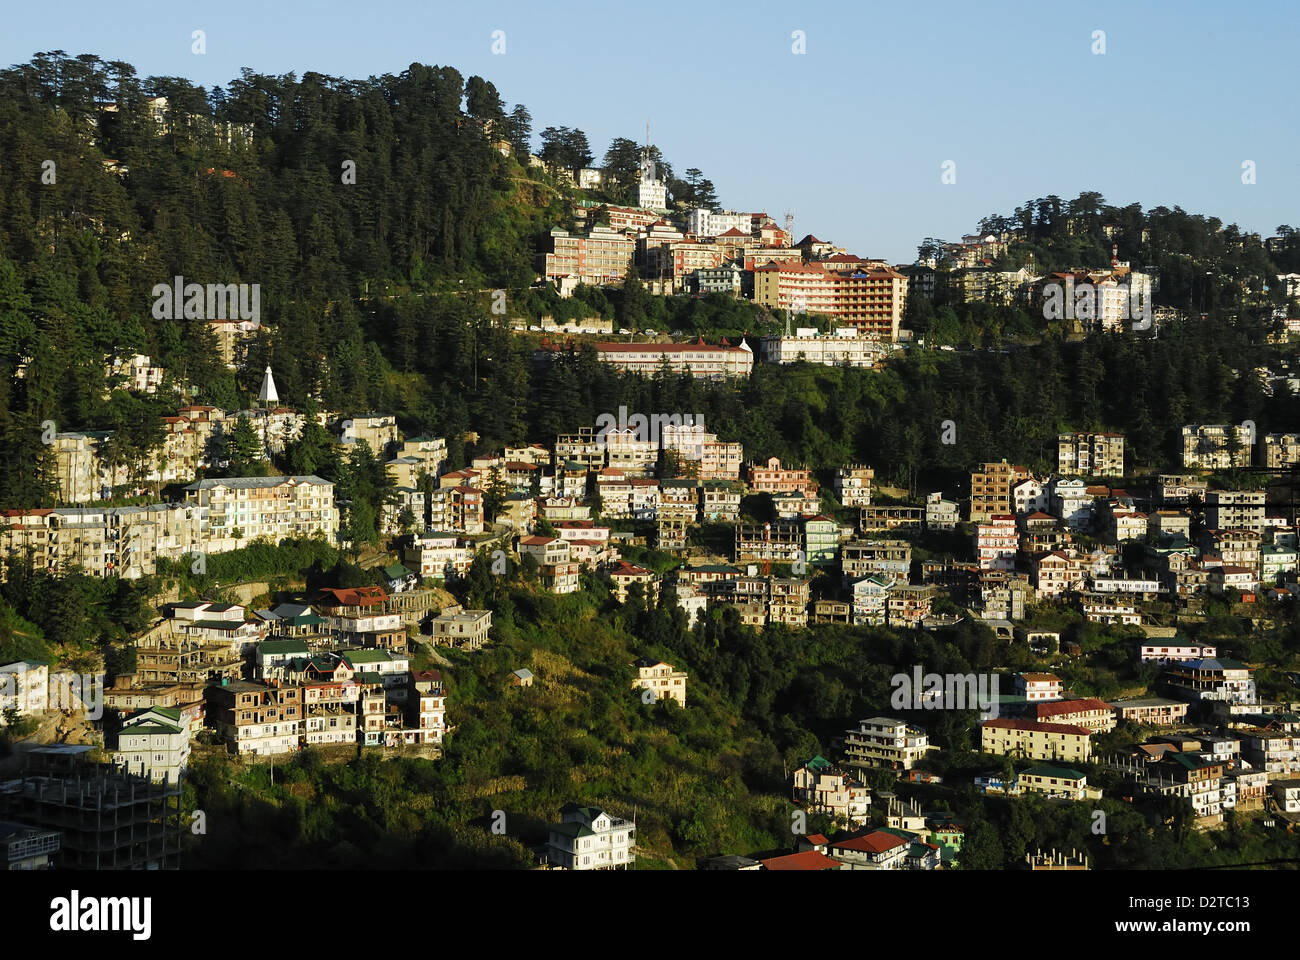 View of Shimla houses, Shimla, Himachal Pradesh, India, Asia - Stock Image